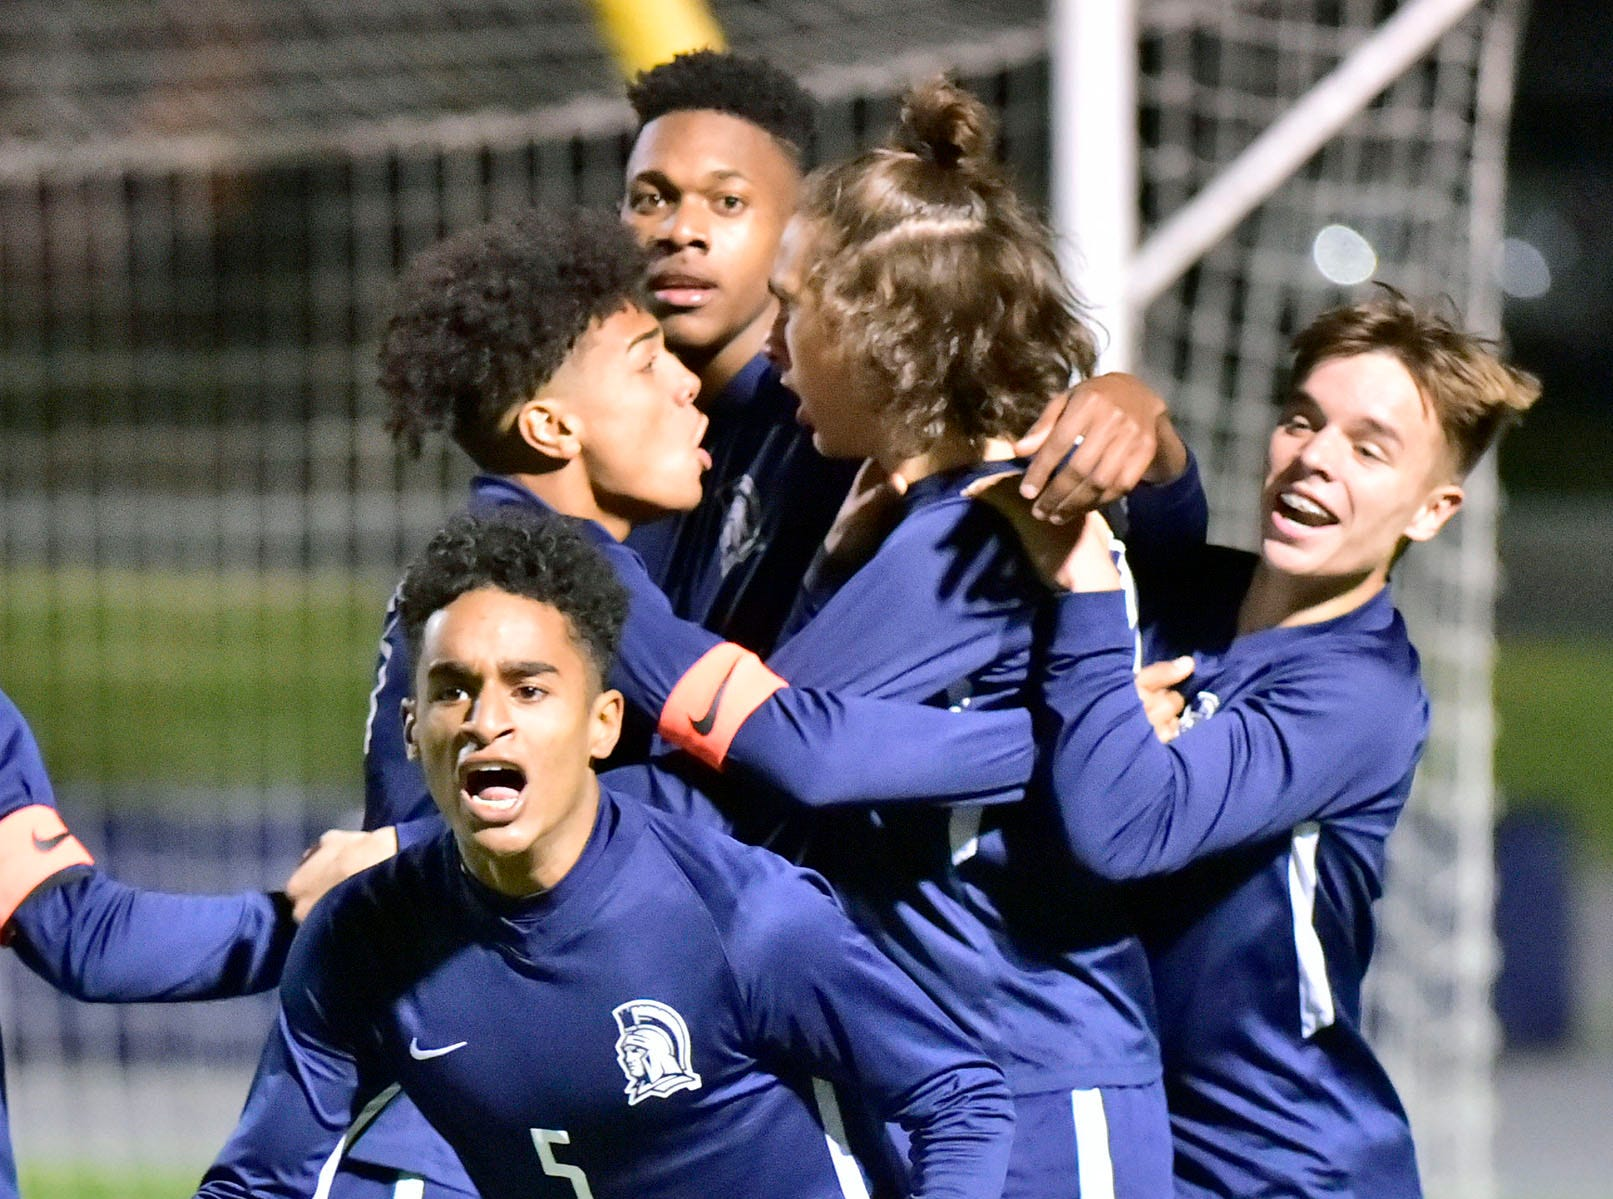 Chambersburg teammates celebrate a second half score to tie the game. Chambersburg lost a first round D3 soccer match to Dallastown 2-1 on Tuesday, Oct. 23, 2018.